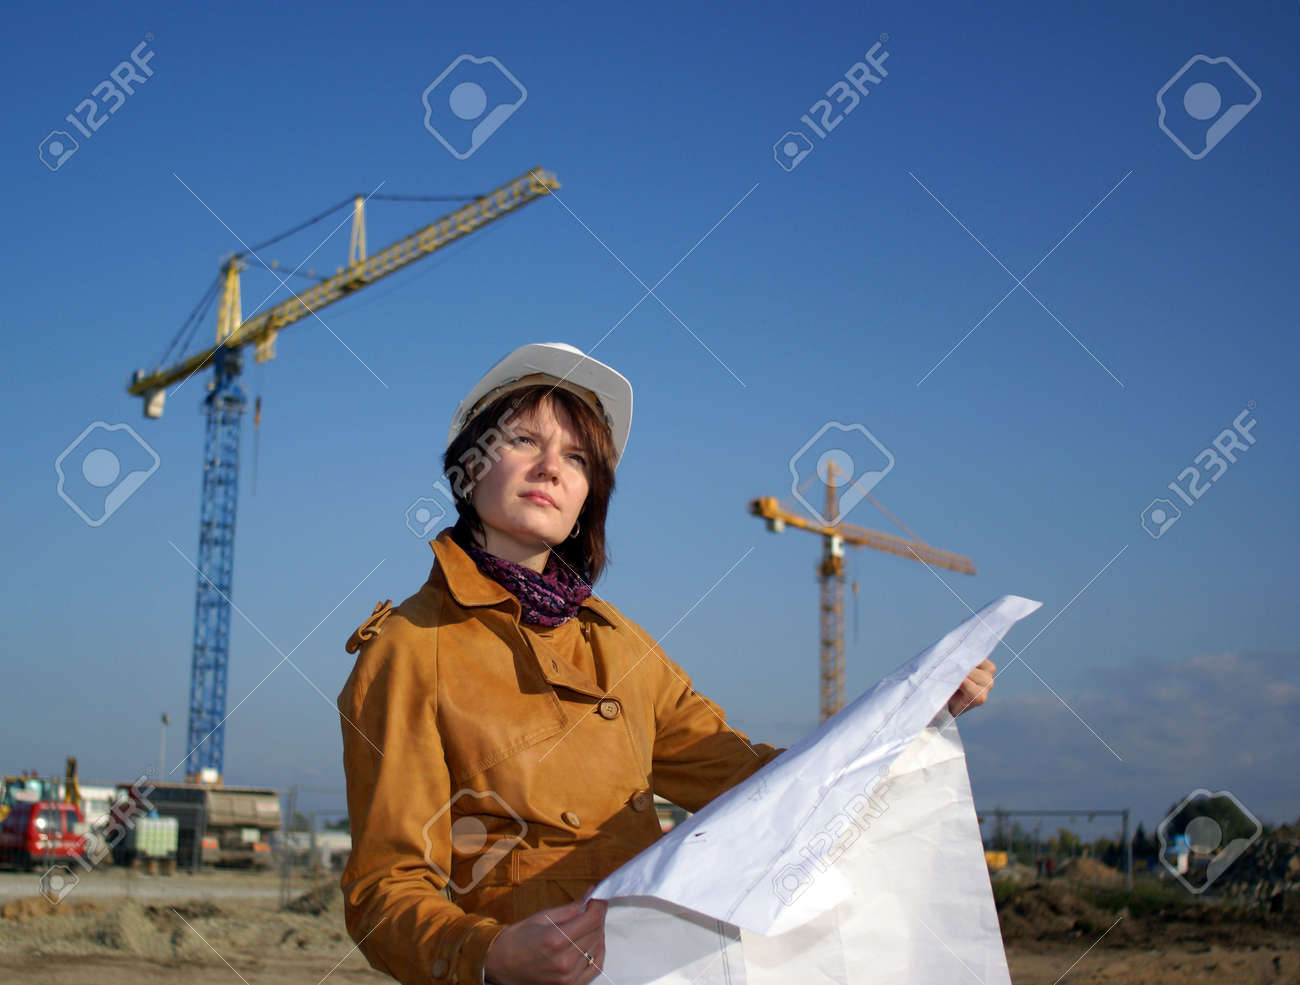 Young architect looking at blueprint in front of construction site against blue sky Stock Photo - 3632864